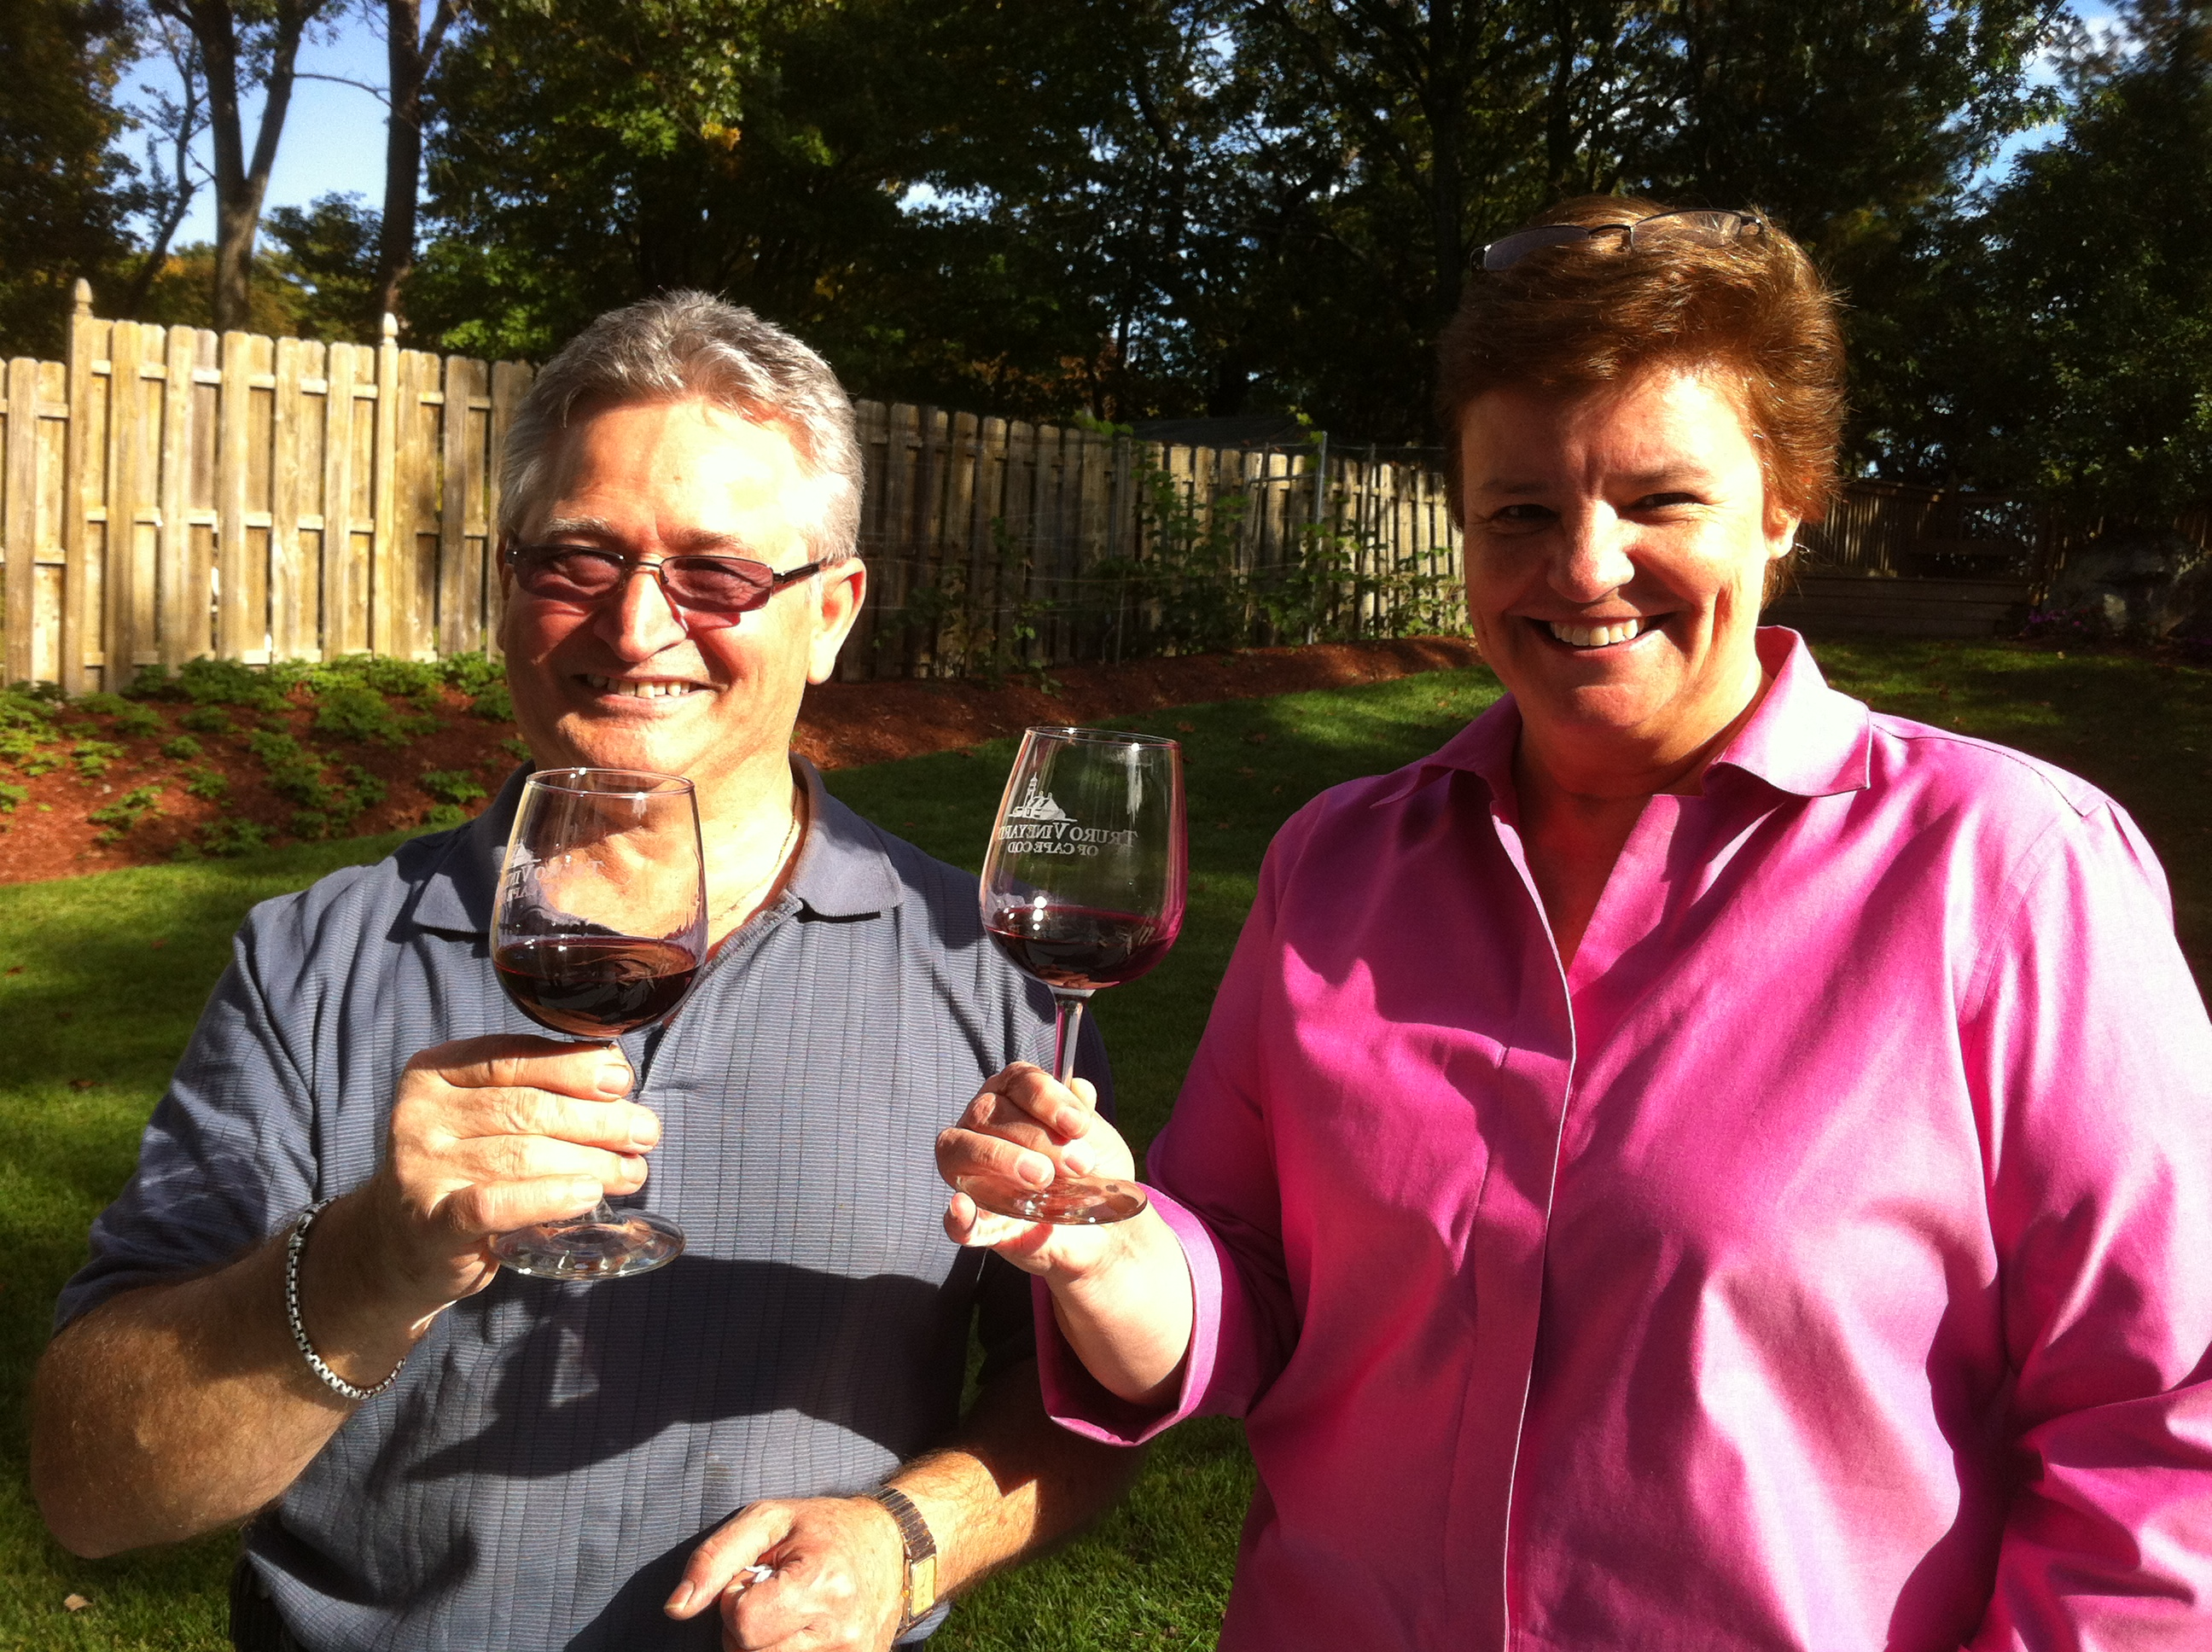 Teresa and Frank sampled the homemade vino. The grape vines were planted along the fence in back.